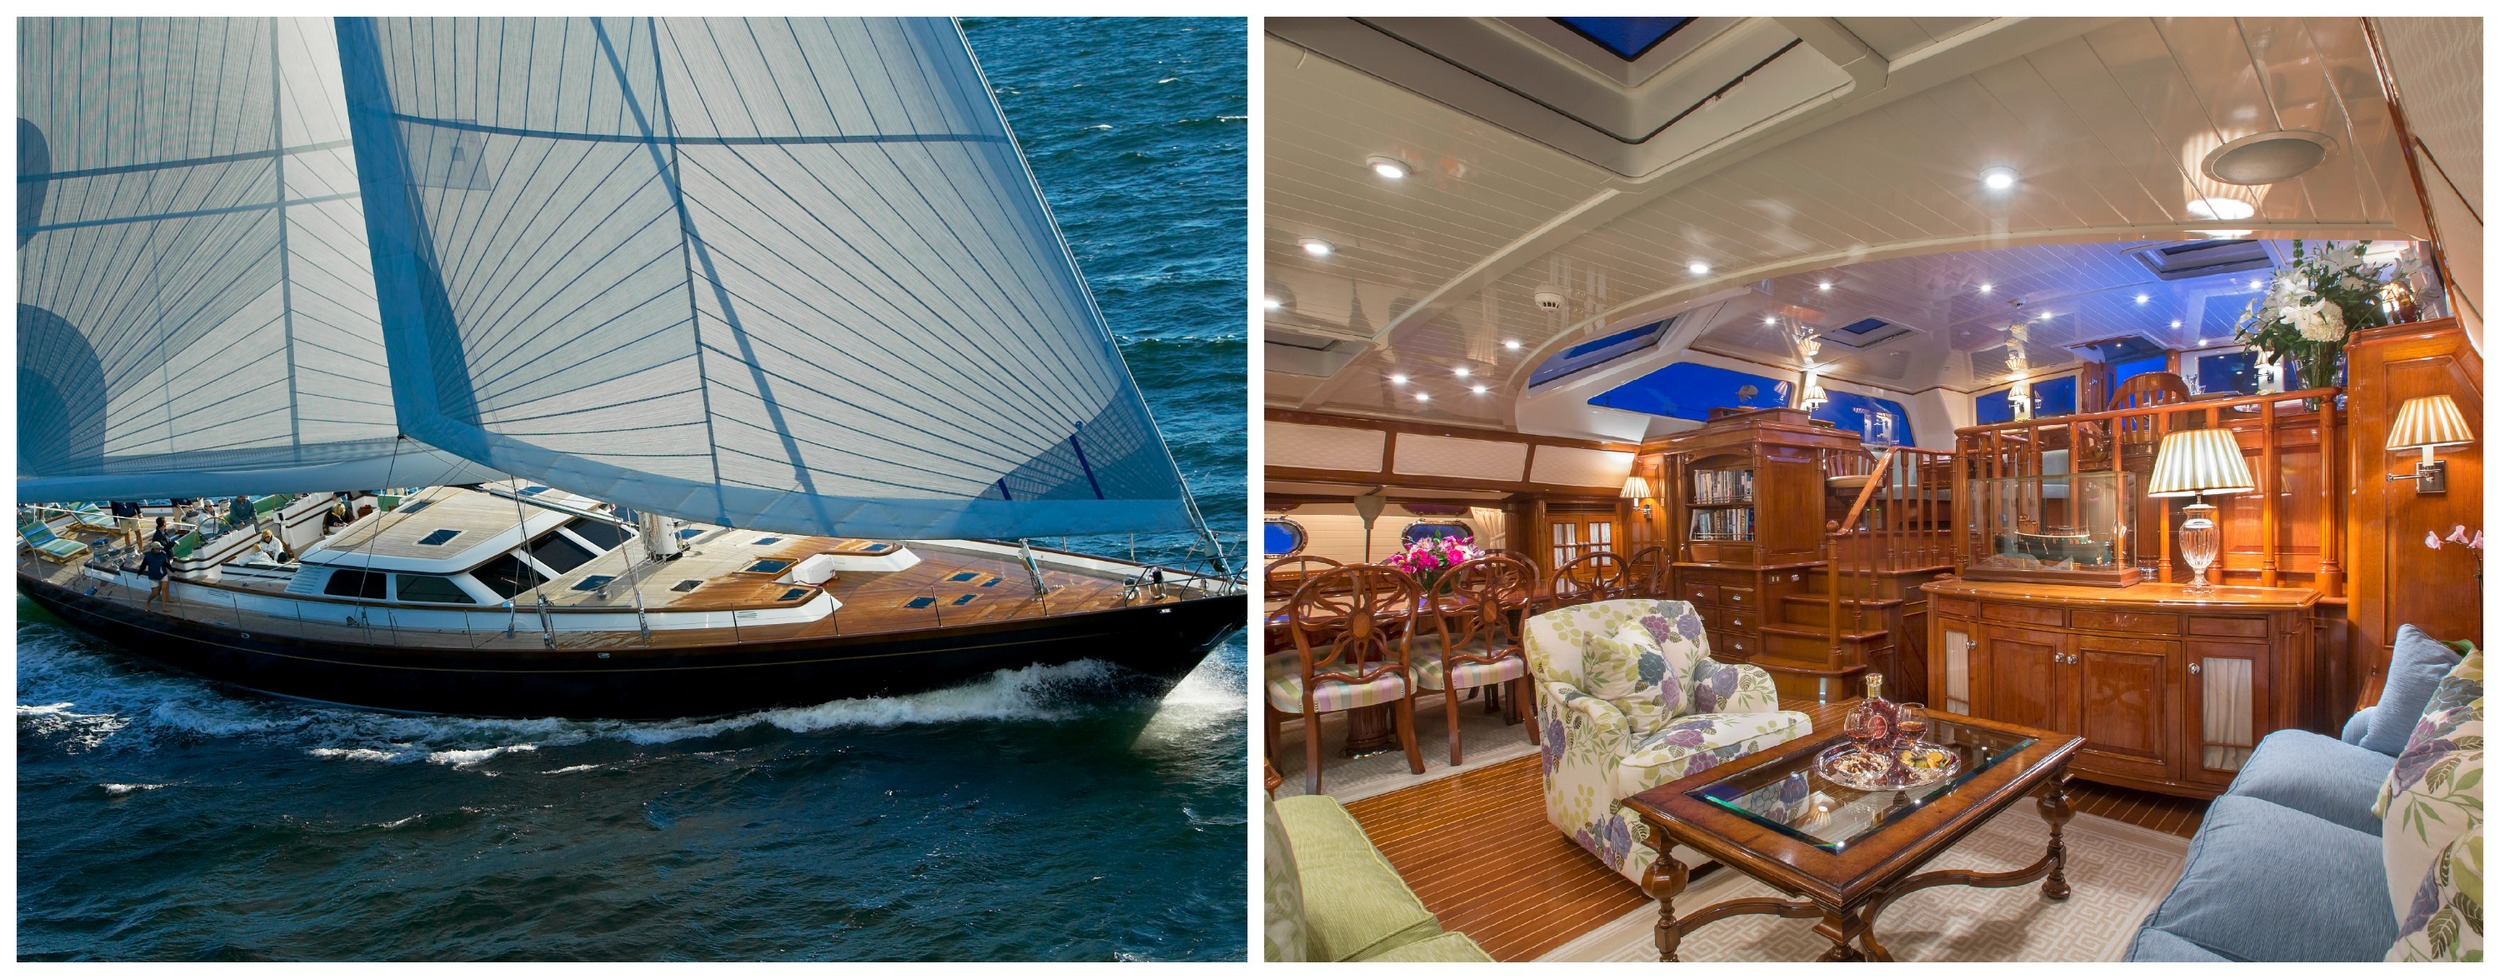 The 116-foot sloop Whisper will be participating in the 2015 Newport Charter Yacht Show